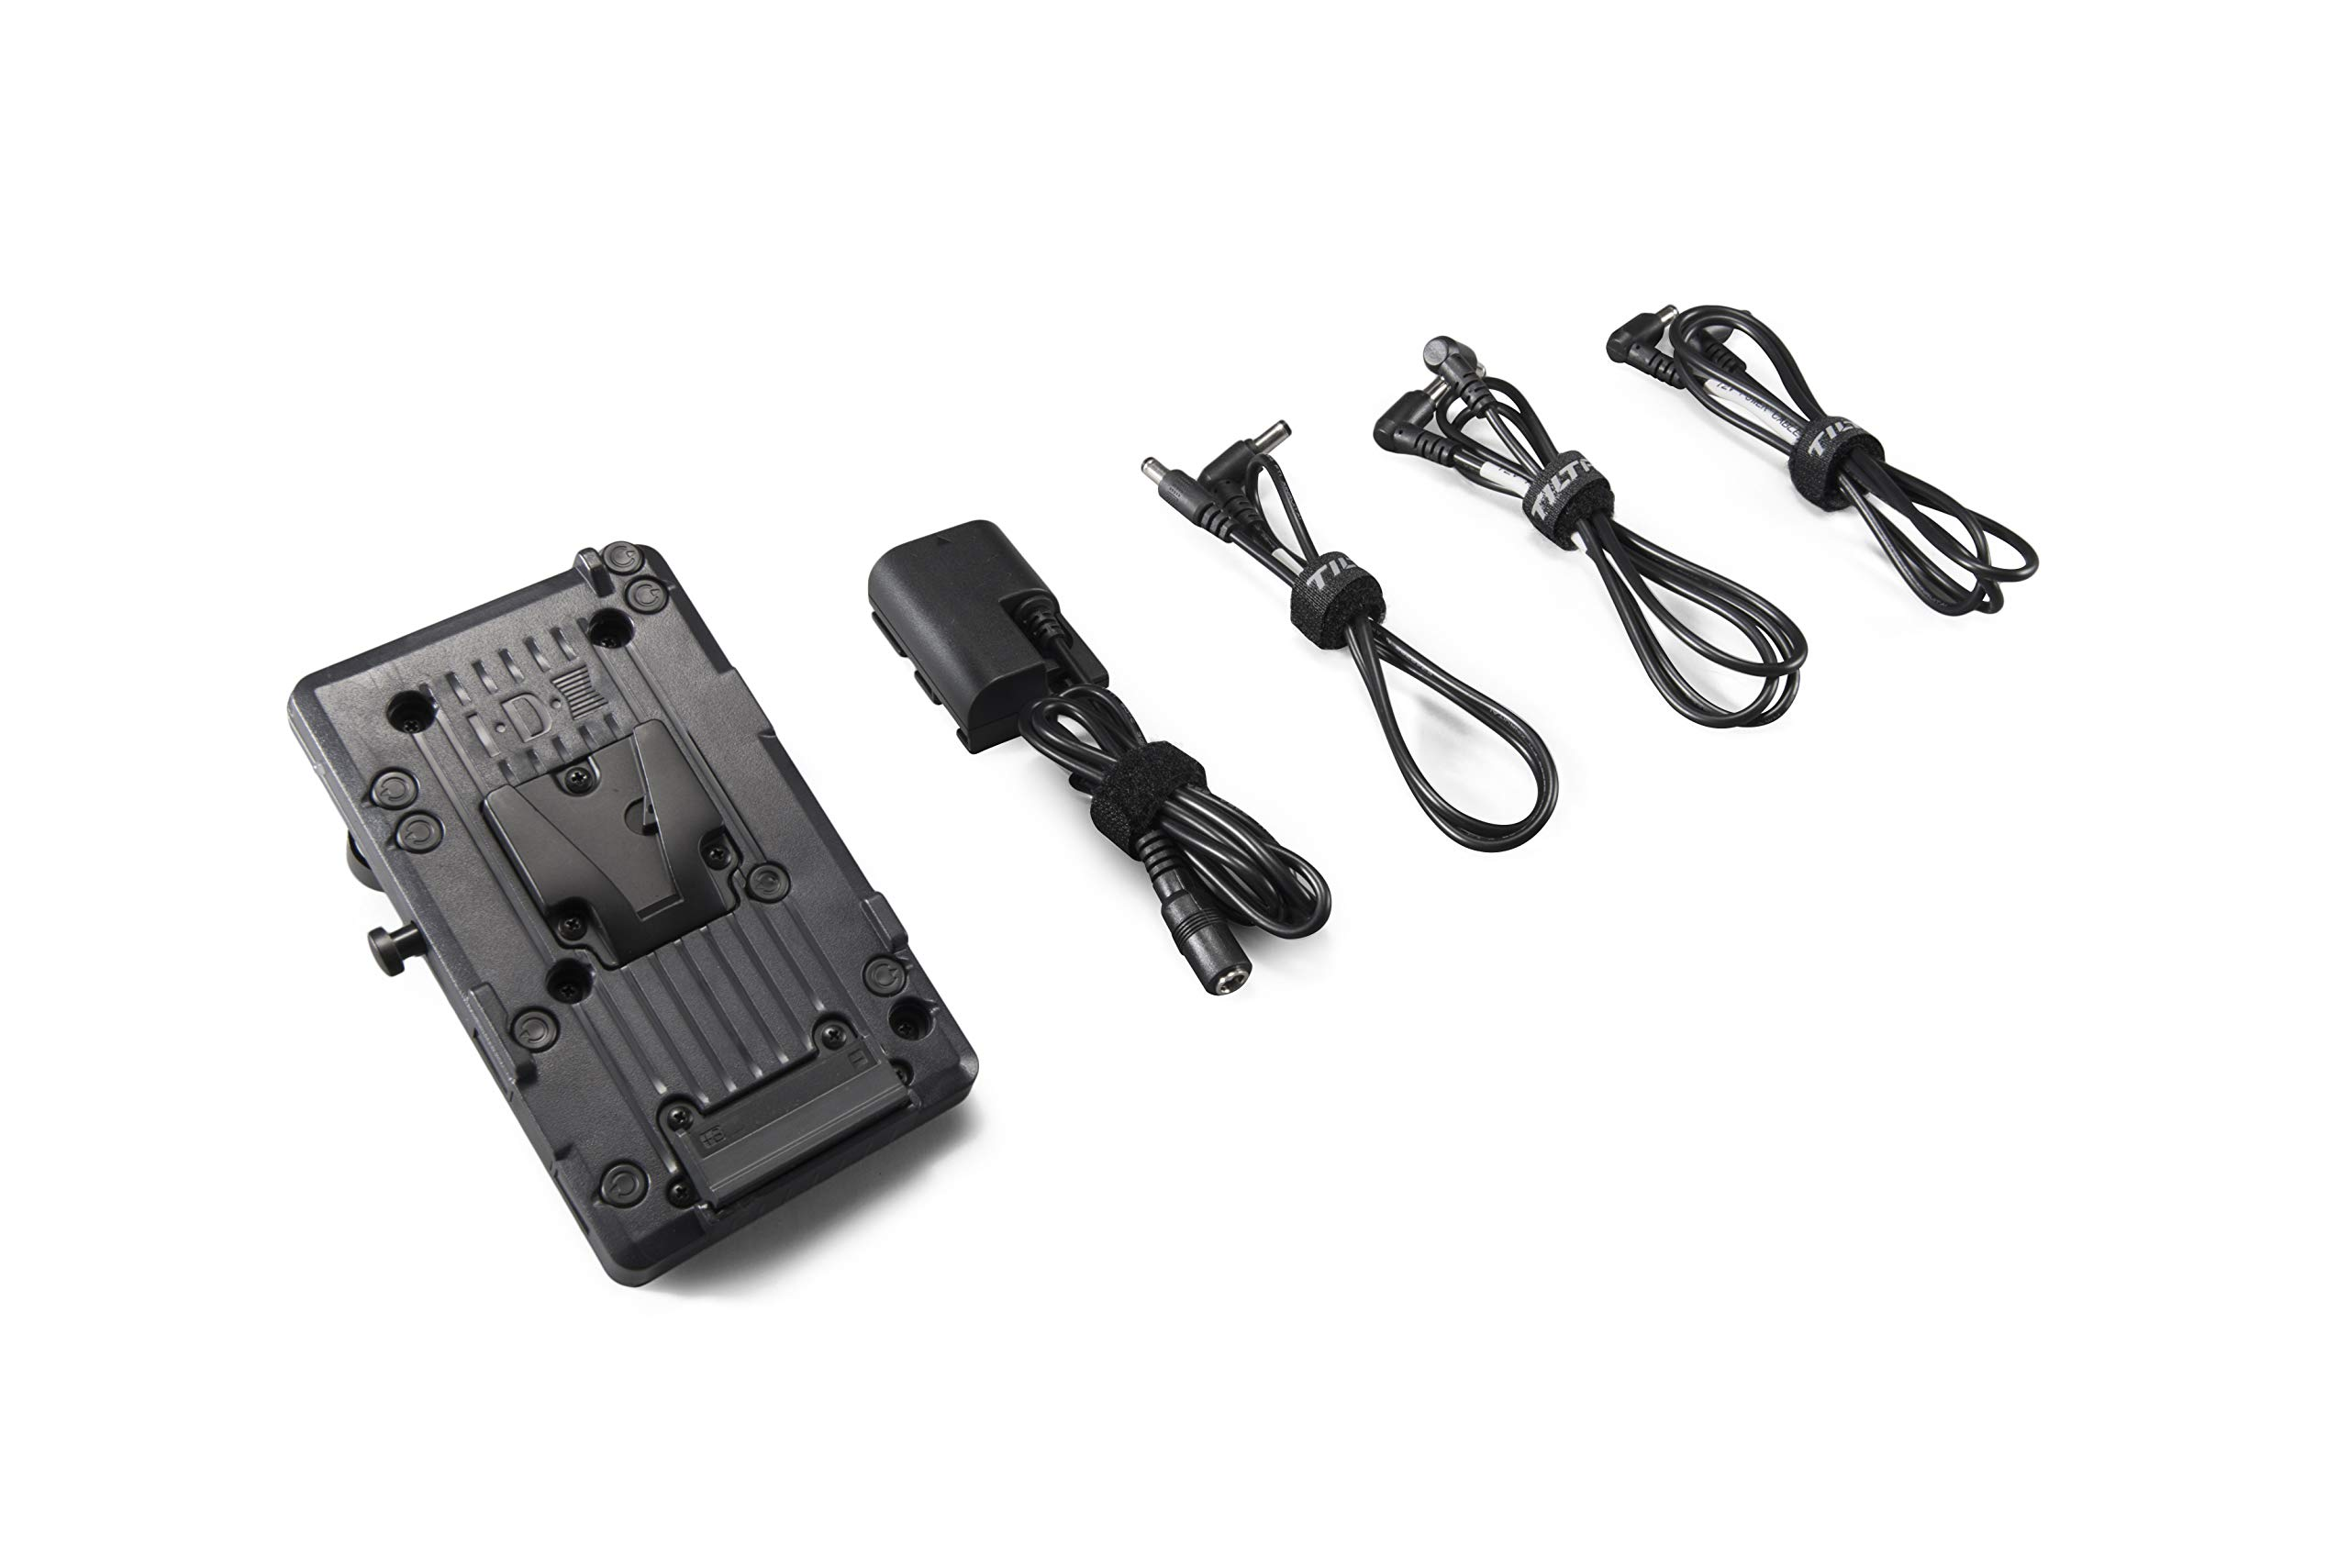 TILTA BT-003 DSLR Power Supply System with 15mm Rod Adapter & LP-E6 Dummy (V-Mount) BT-003 Power Supply System for DSLR and Mirrorless Cameras by Tilta